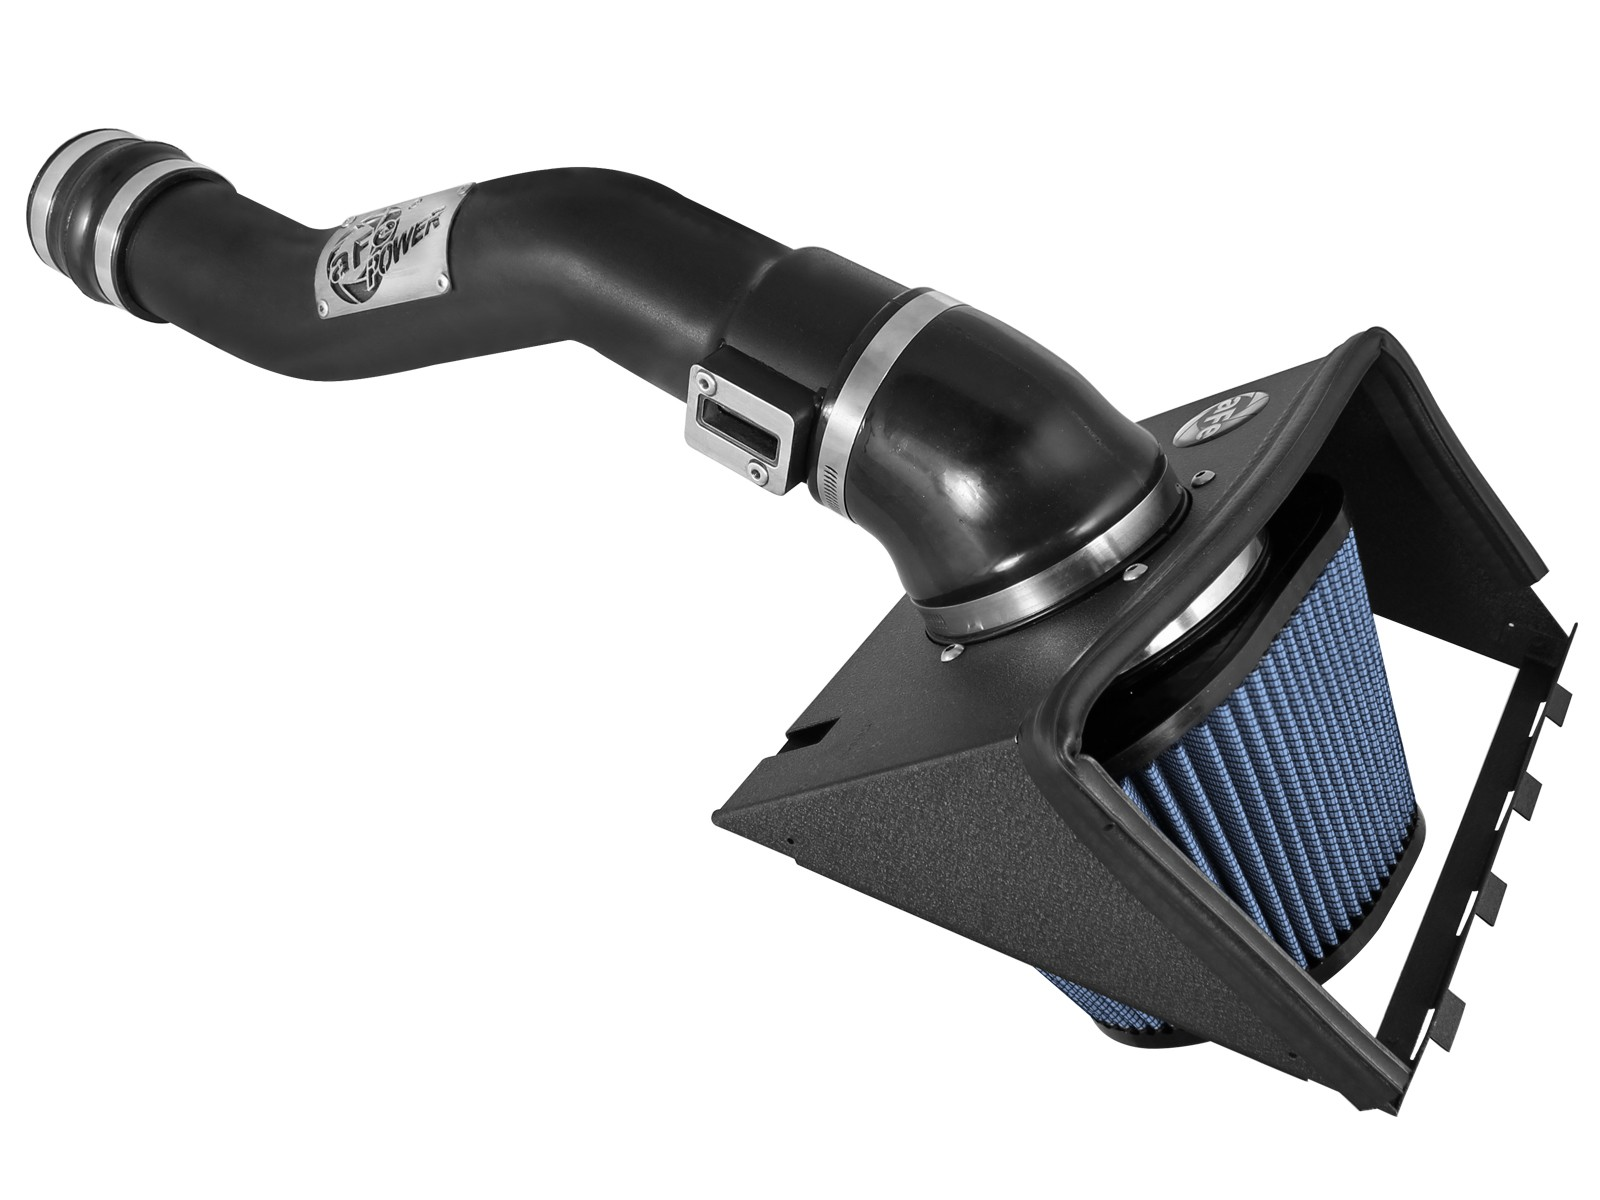 aFe POWER 54-12592 Magnum FORCE Stage-2 Pro 5R Cold Air Intake System